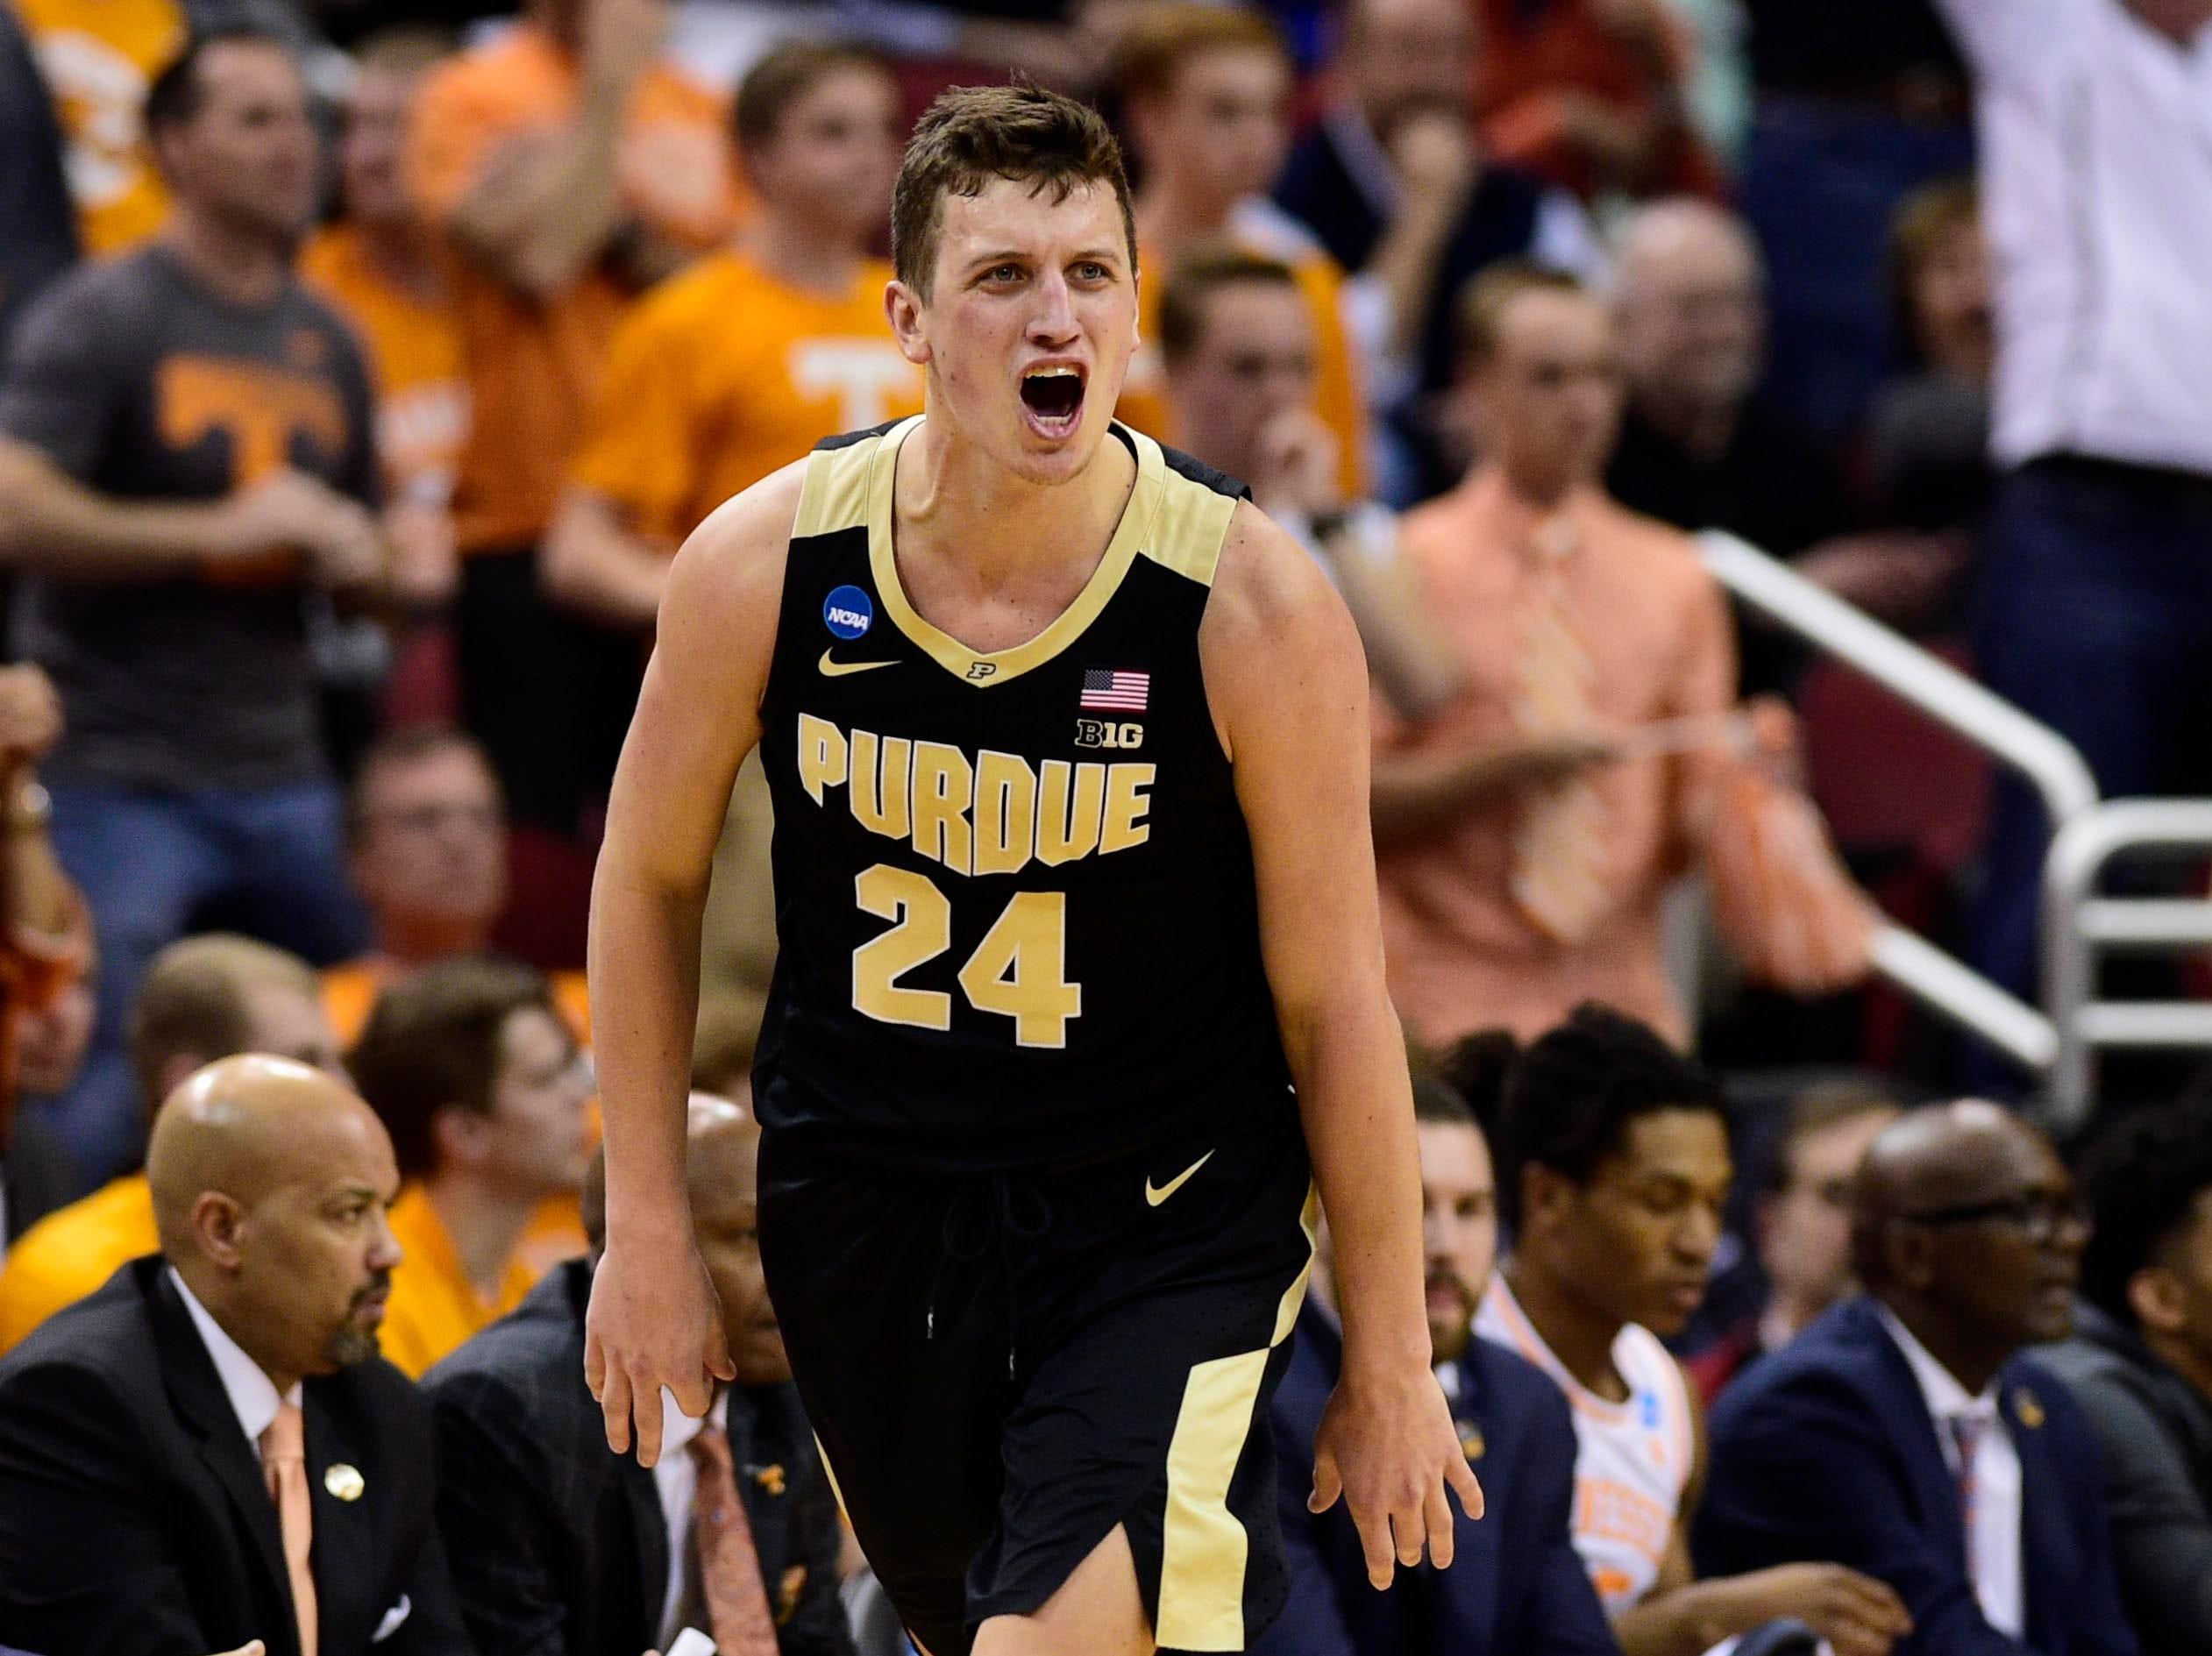 Mar 28, 2019; Louisville, KY, United States; Purdue Boilermakers forward Grady Eifert (24) reacts during the first half in the semifinals of the south regional against the Tennessee Volunteers of the 2019 NCAA Tournament at KFC Yum Center. Mandatory Credit: Thomas J. Russo-USA TODAY Sports